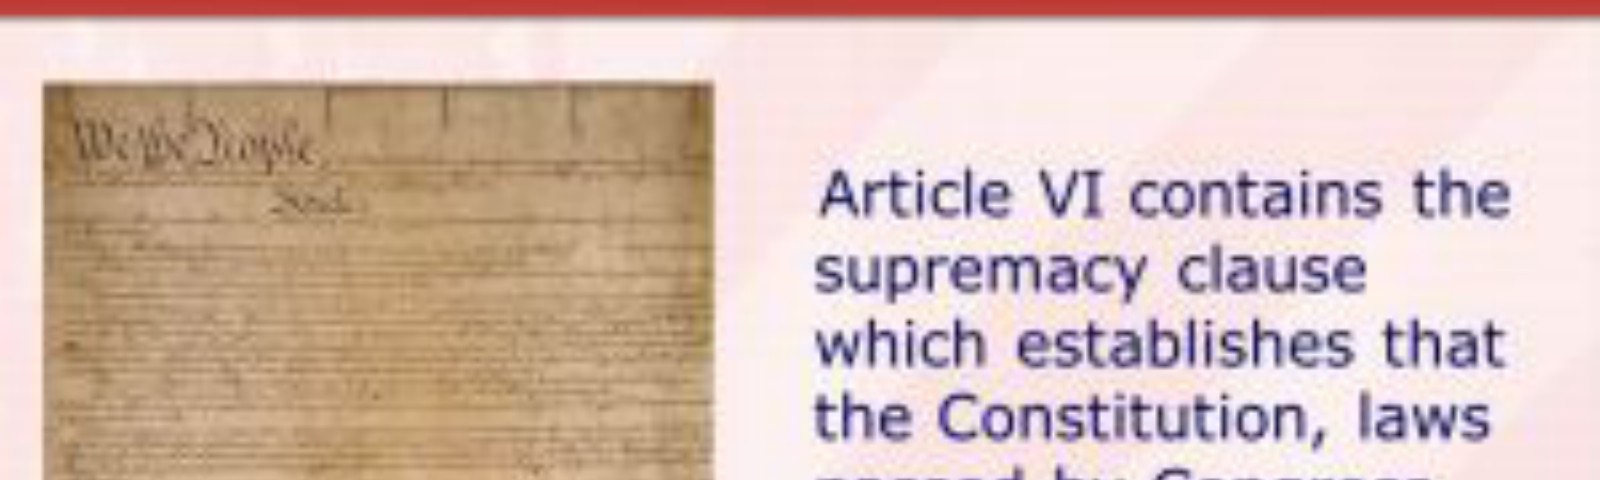 Article VI contains the supremacy clause which establishes that the Constitution, laws passed by Congress and treaties of the United States shall be the supreme Law of the Land.